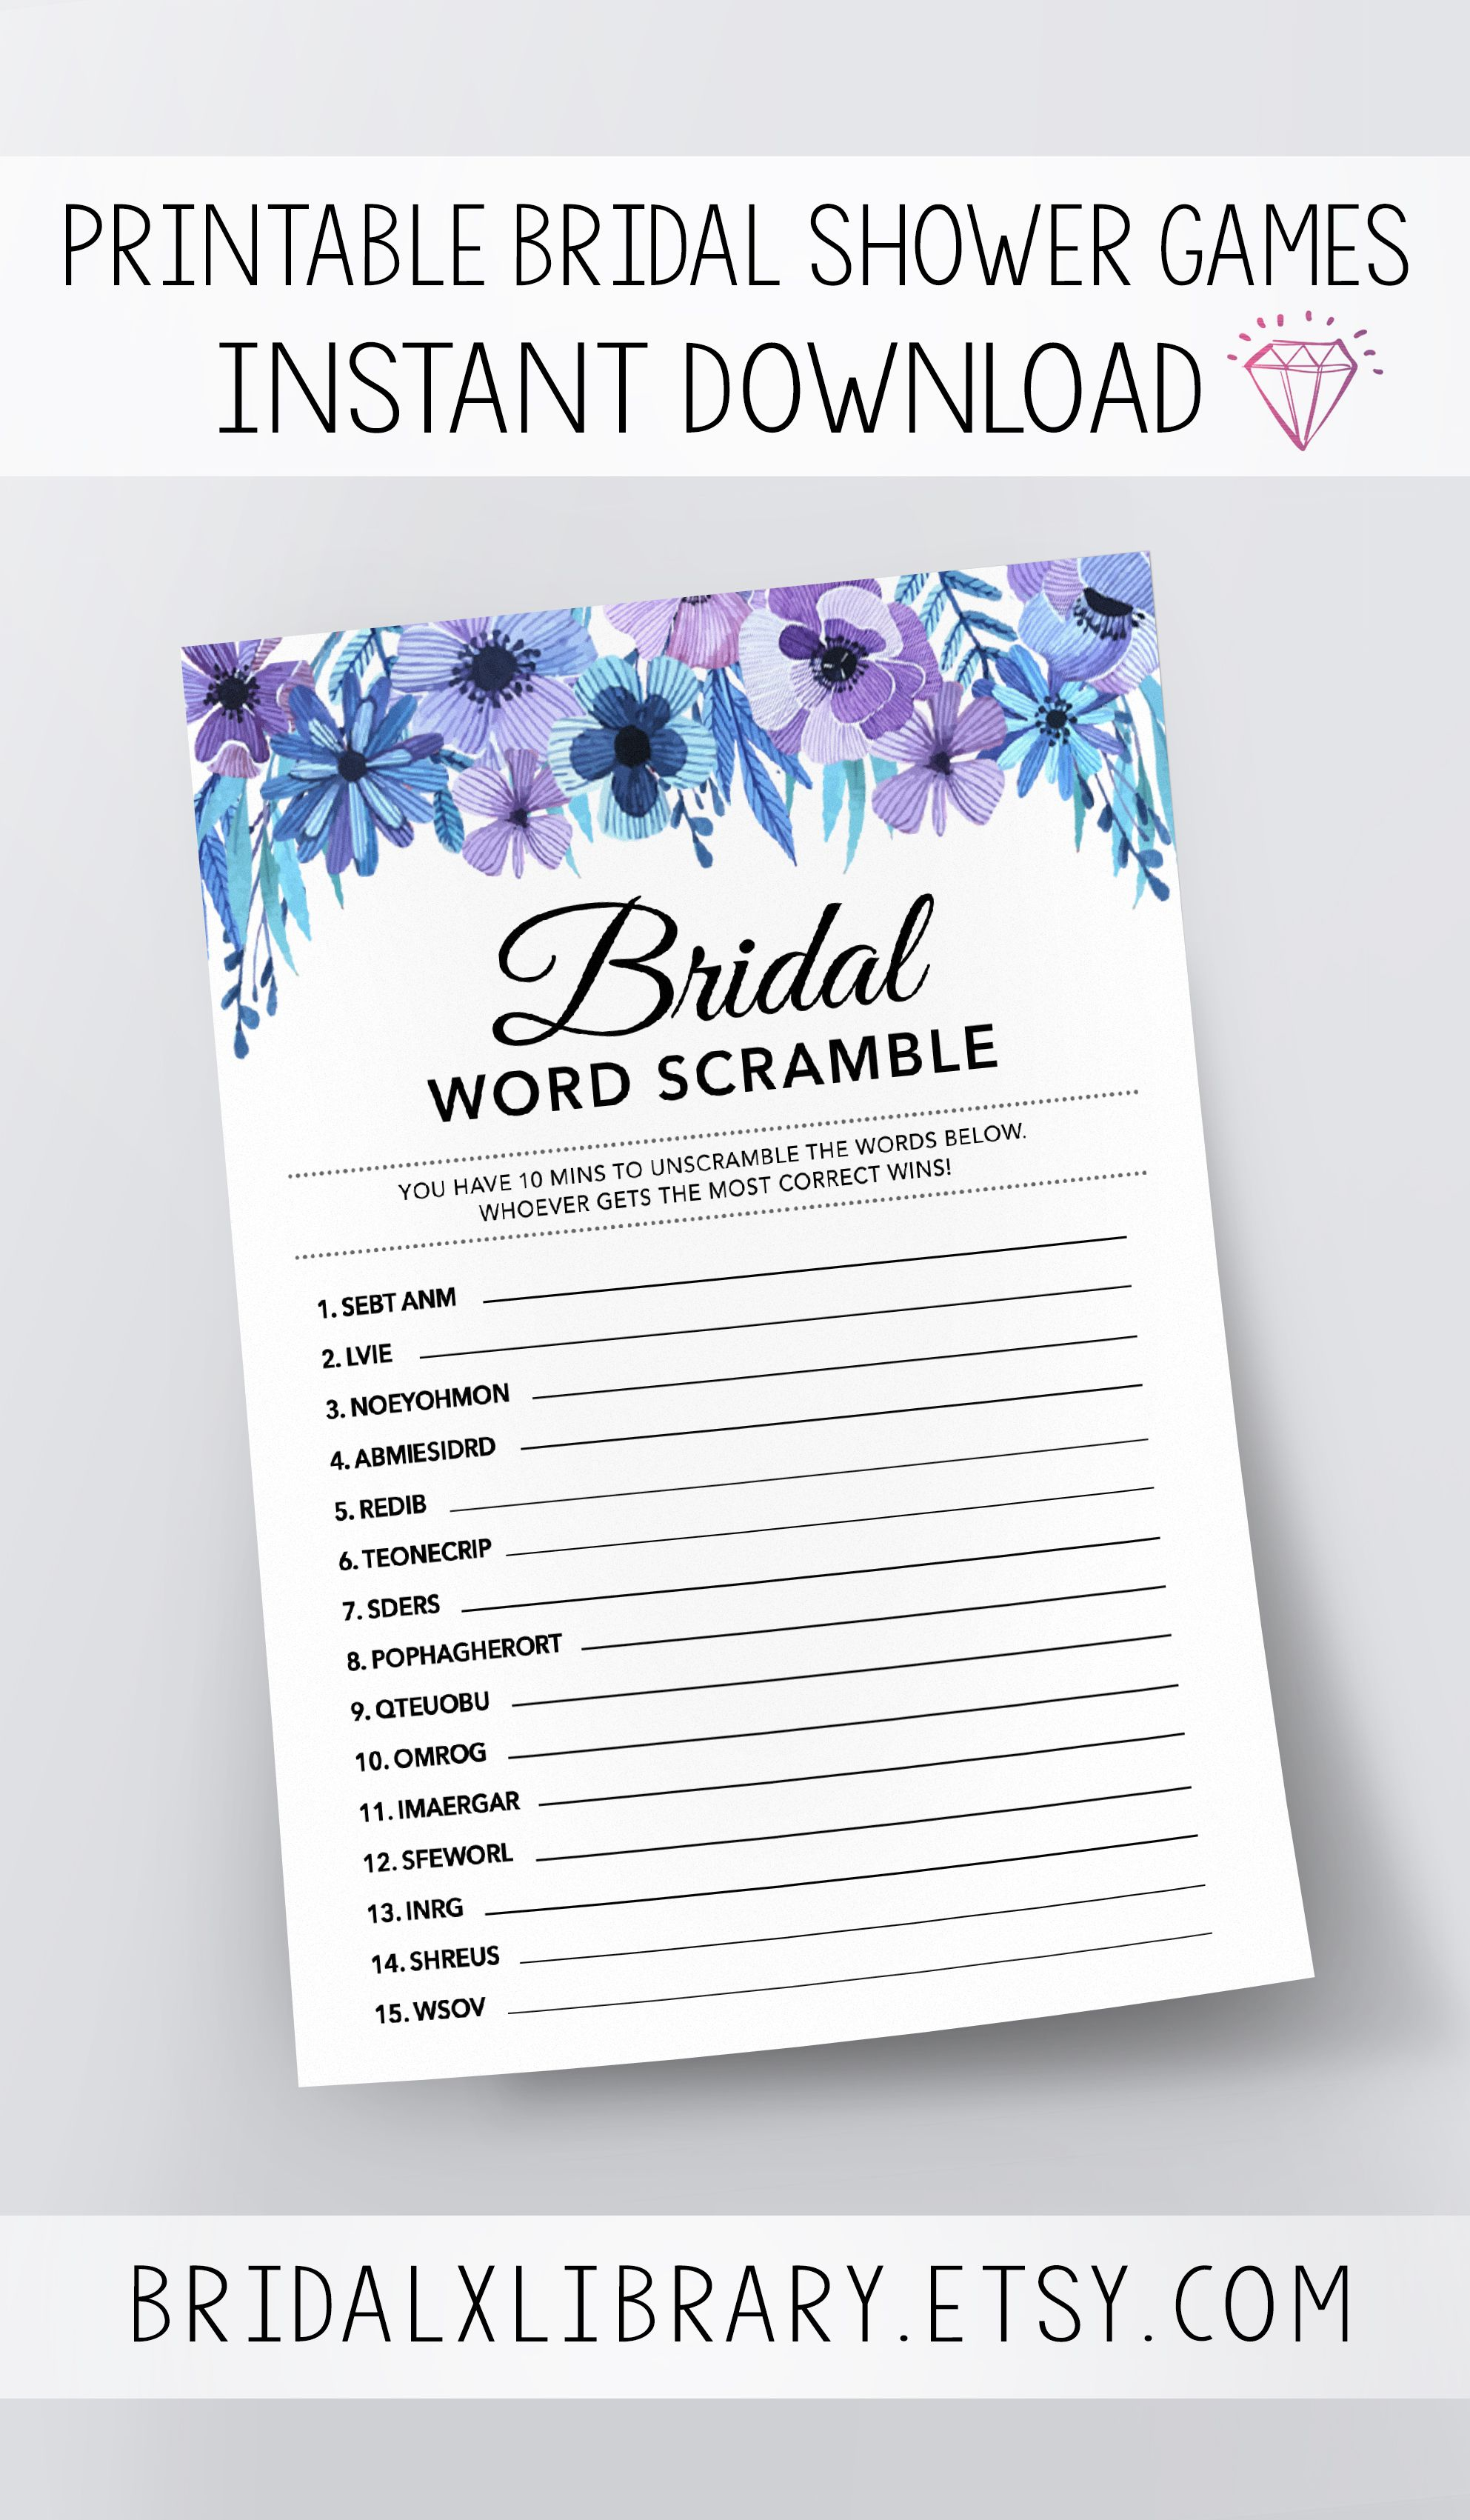 Bridal Word Scramble, Bridal Shower Games Printables, Bridal Shower - Free Printable Bridal Shower Games Word Scramble